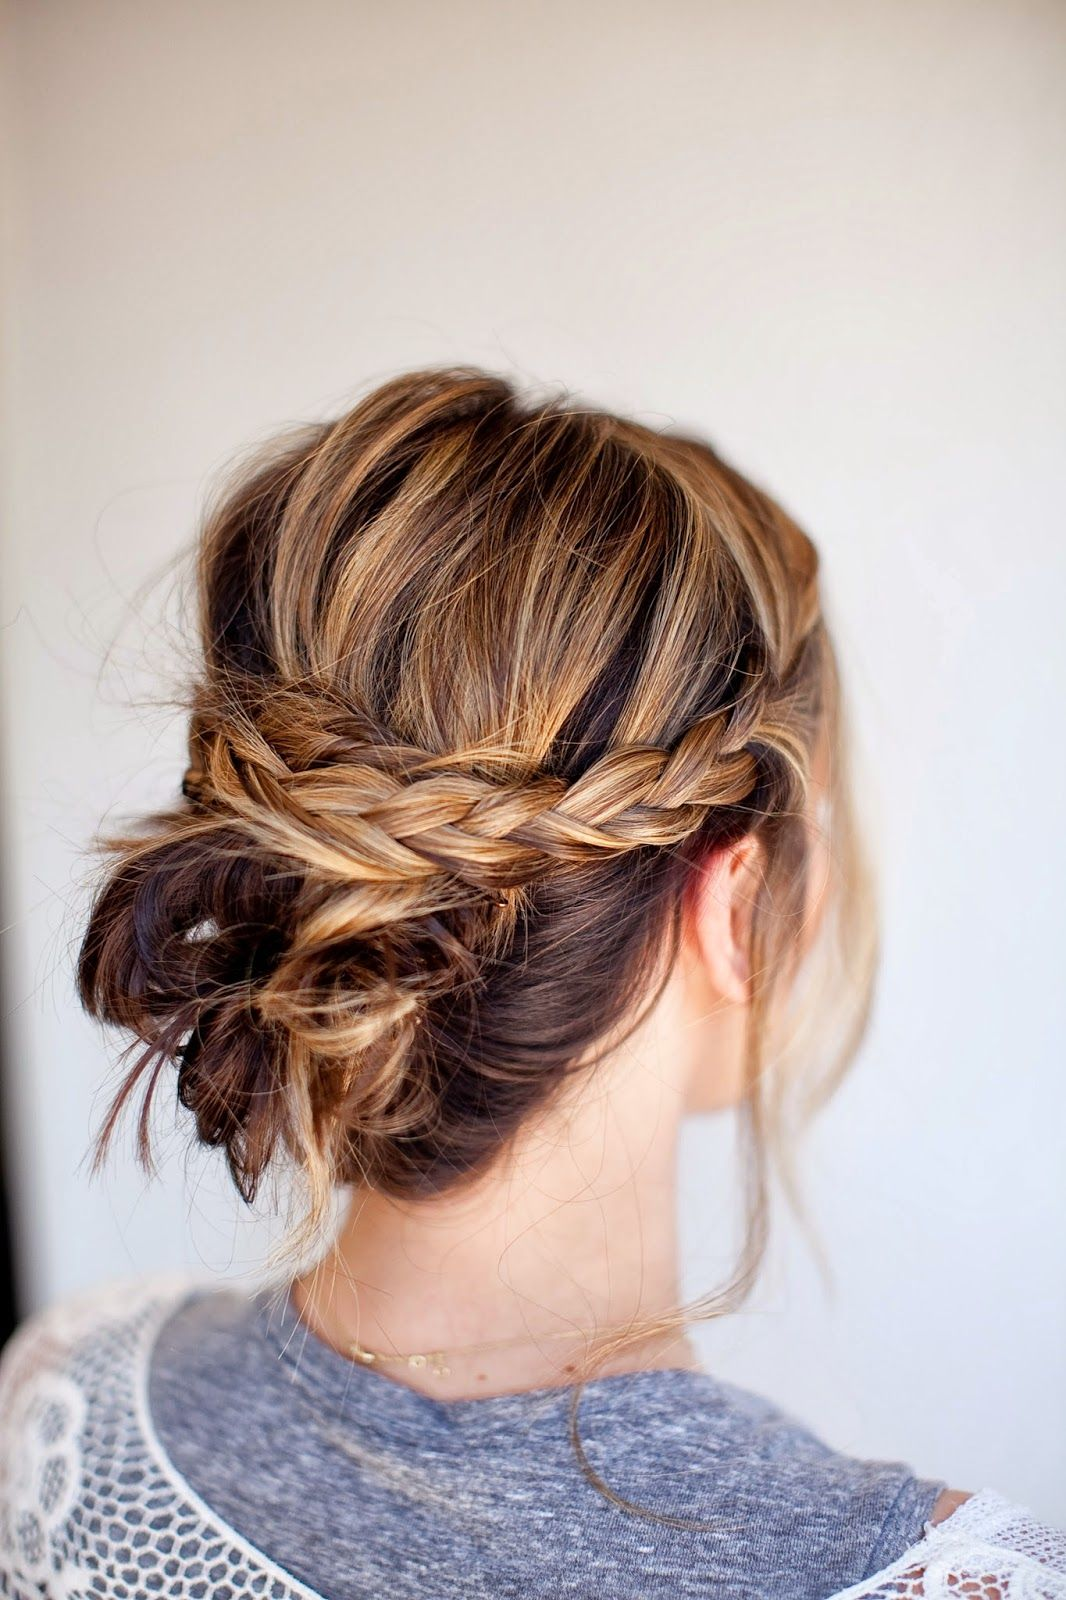 Awesome 18 Quick And Simple Updo Hairstyles For Medium Hair Braid Bun Easy Hairstyle